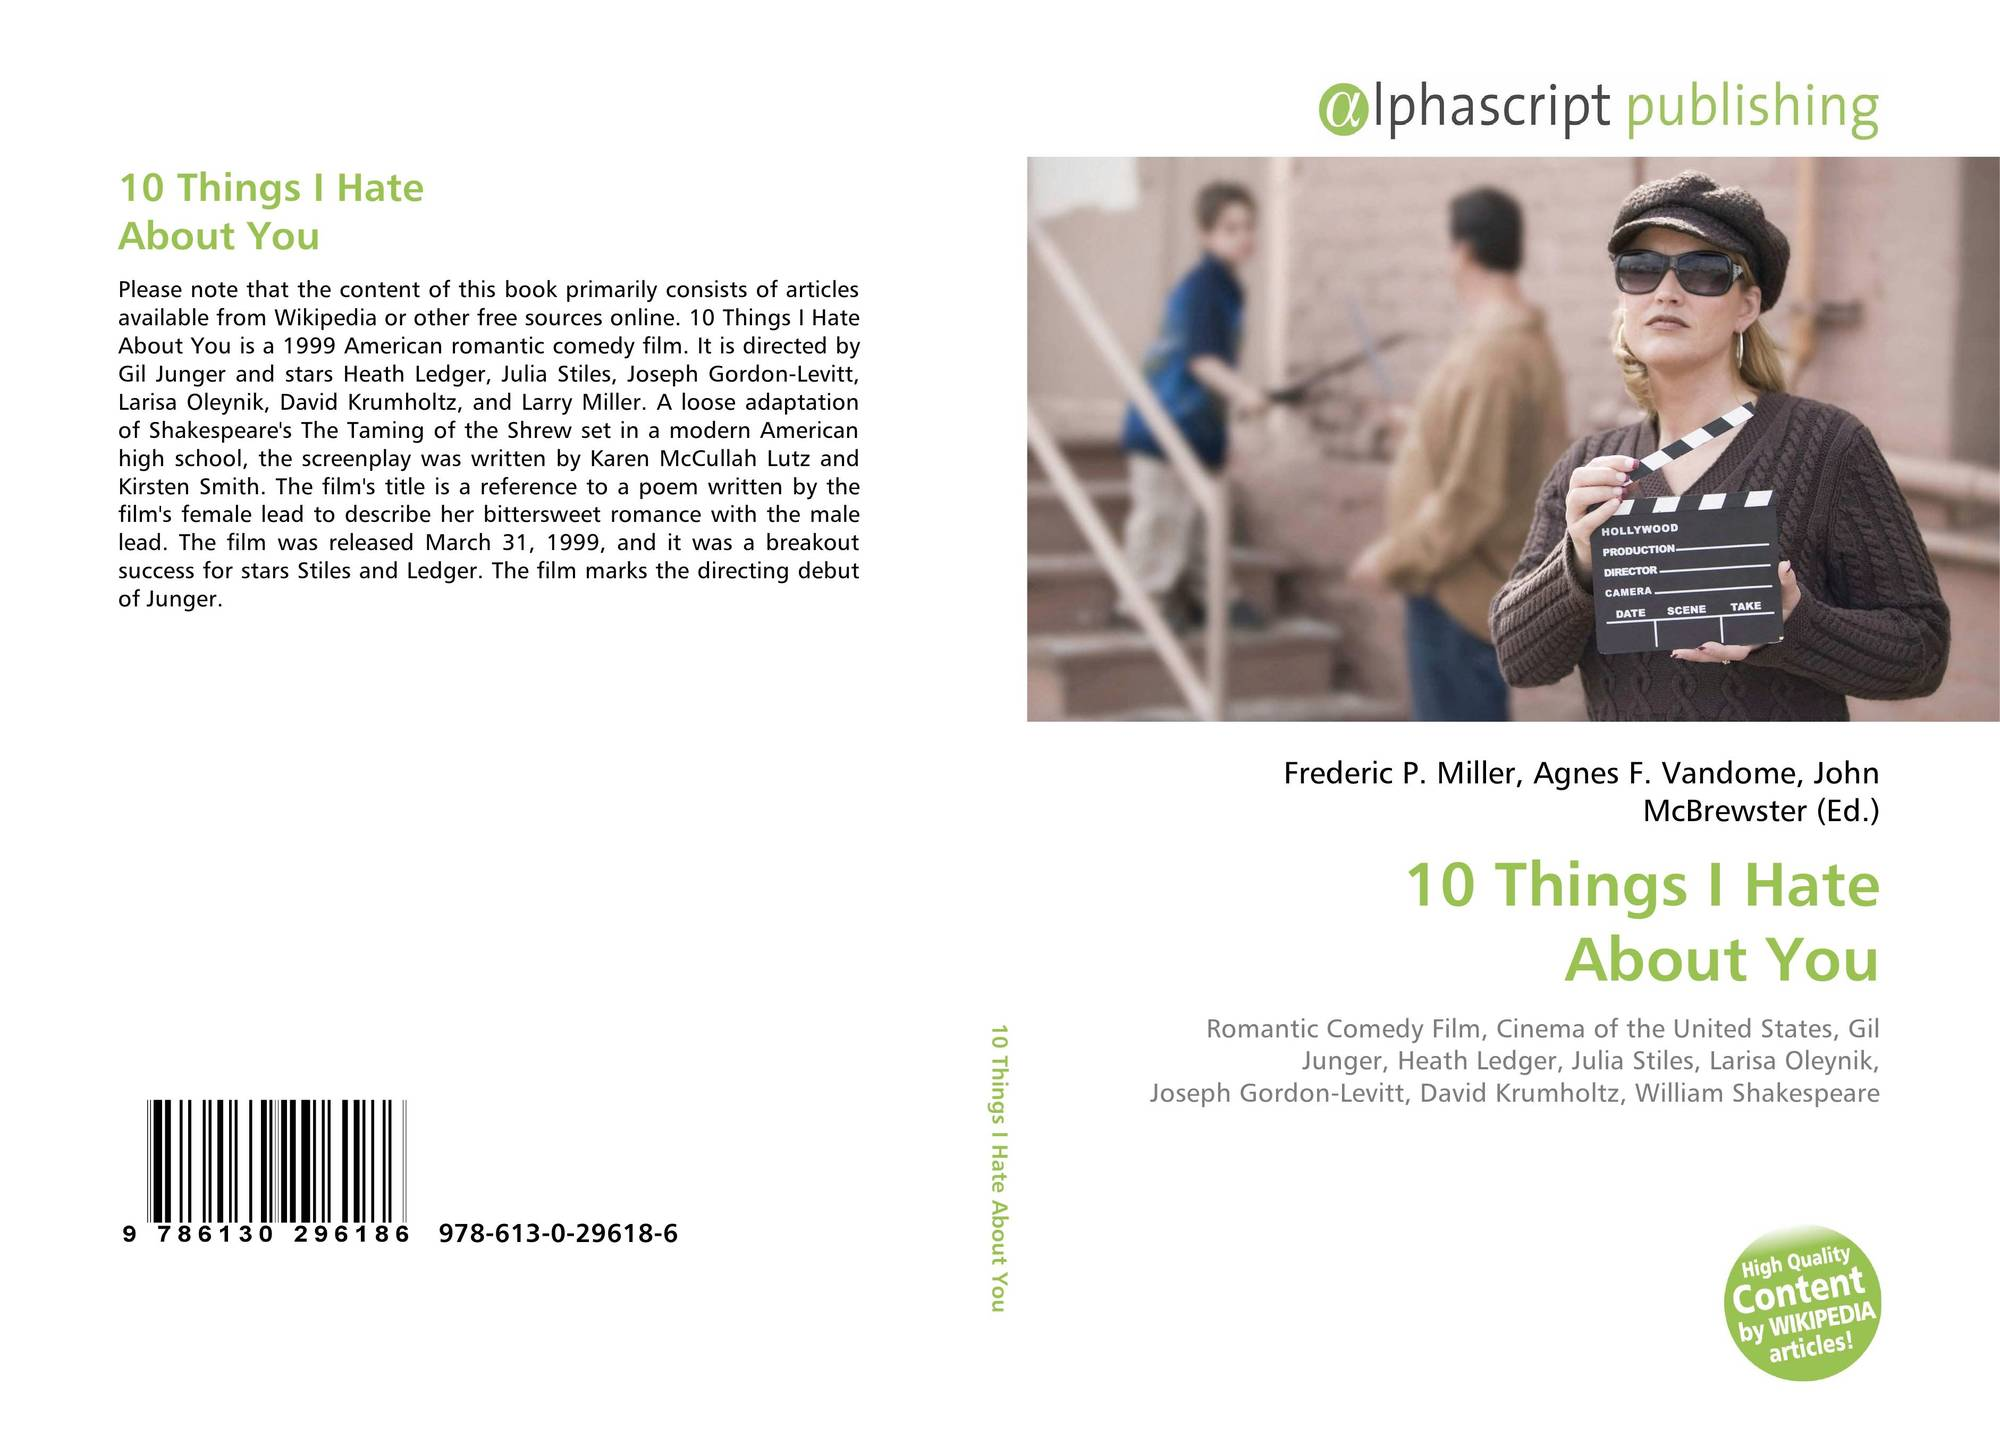 10 Things I Hate About You Cover: 10 Things I Hate About You, 978-613-0-29618-6, 6130296185